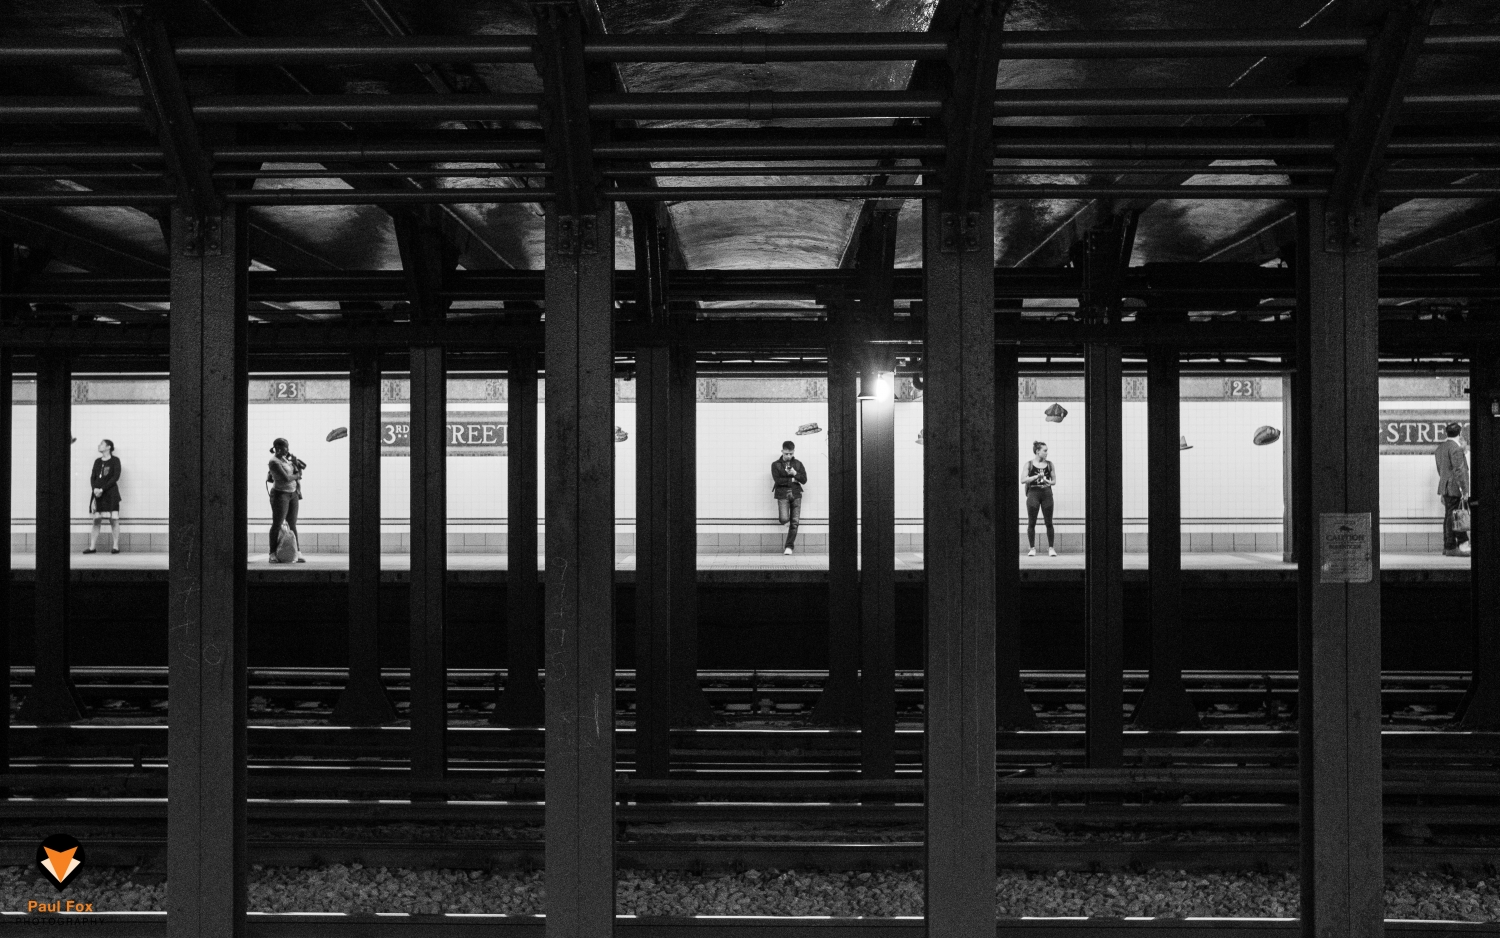 UNDERGROUND_-_NEW_YORK_2018_(1_of_1).jpg